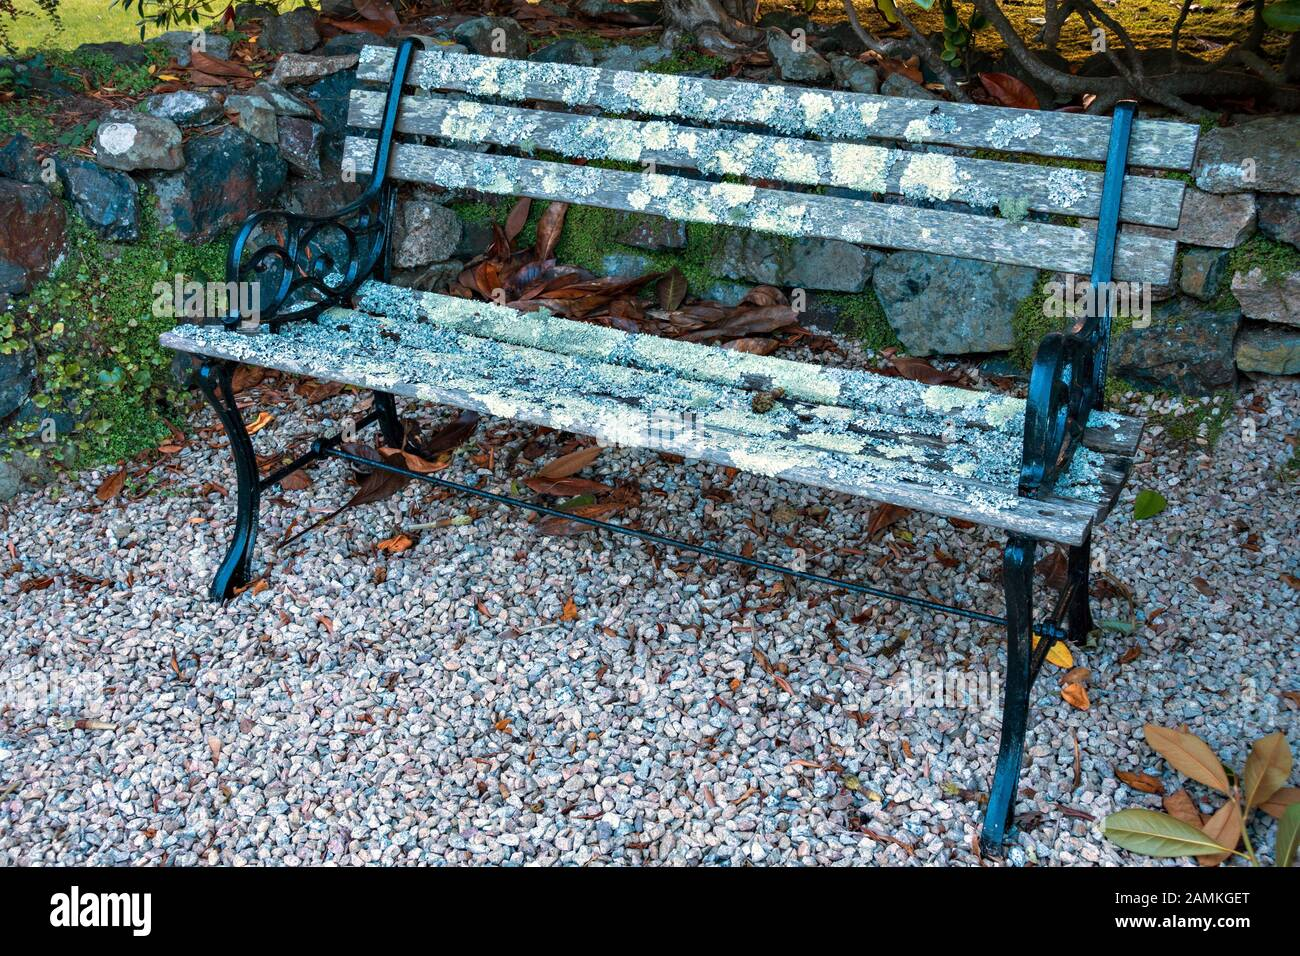 Garden Bench Seat With Black Painted Metal End Supports And Wooden Slats Which Are Covered In Lichen Standing On Gravel Cornwall Uk Stock Photo Alamy